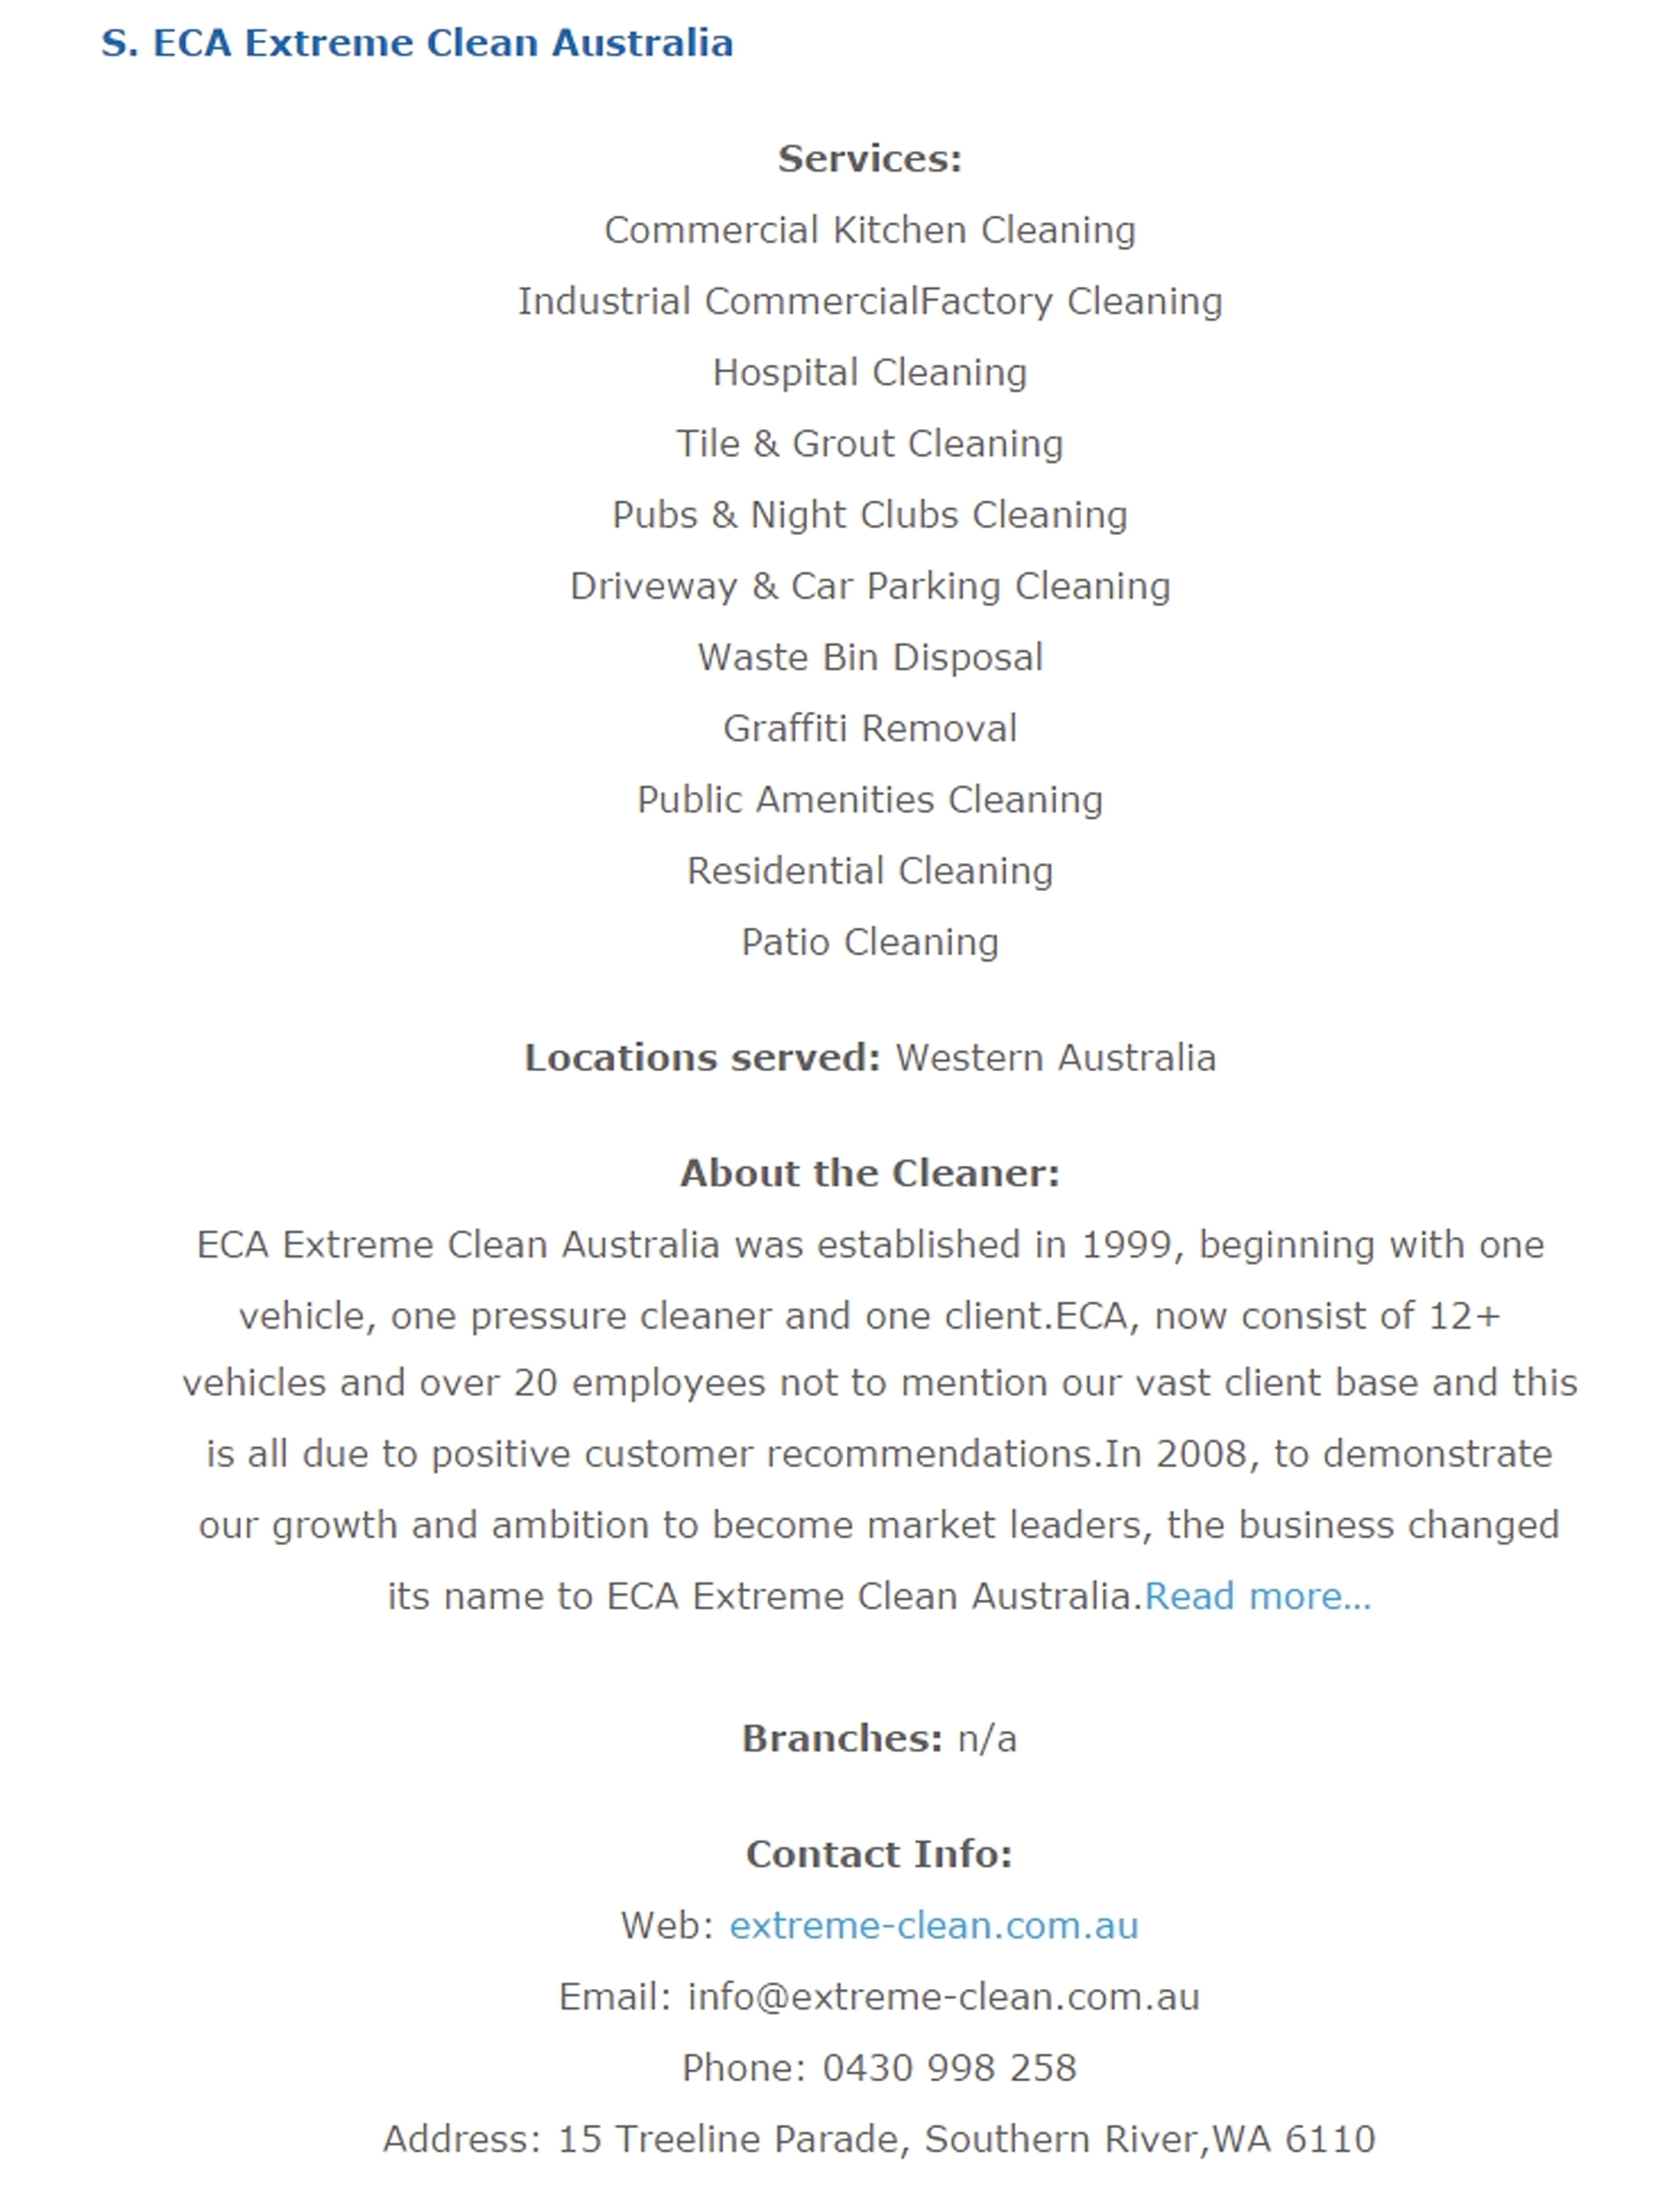 The best 141 Cleaning Services Companies in Australia - in Sydney